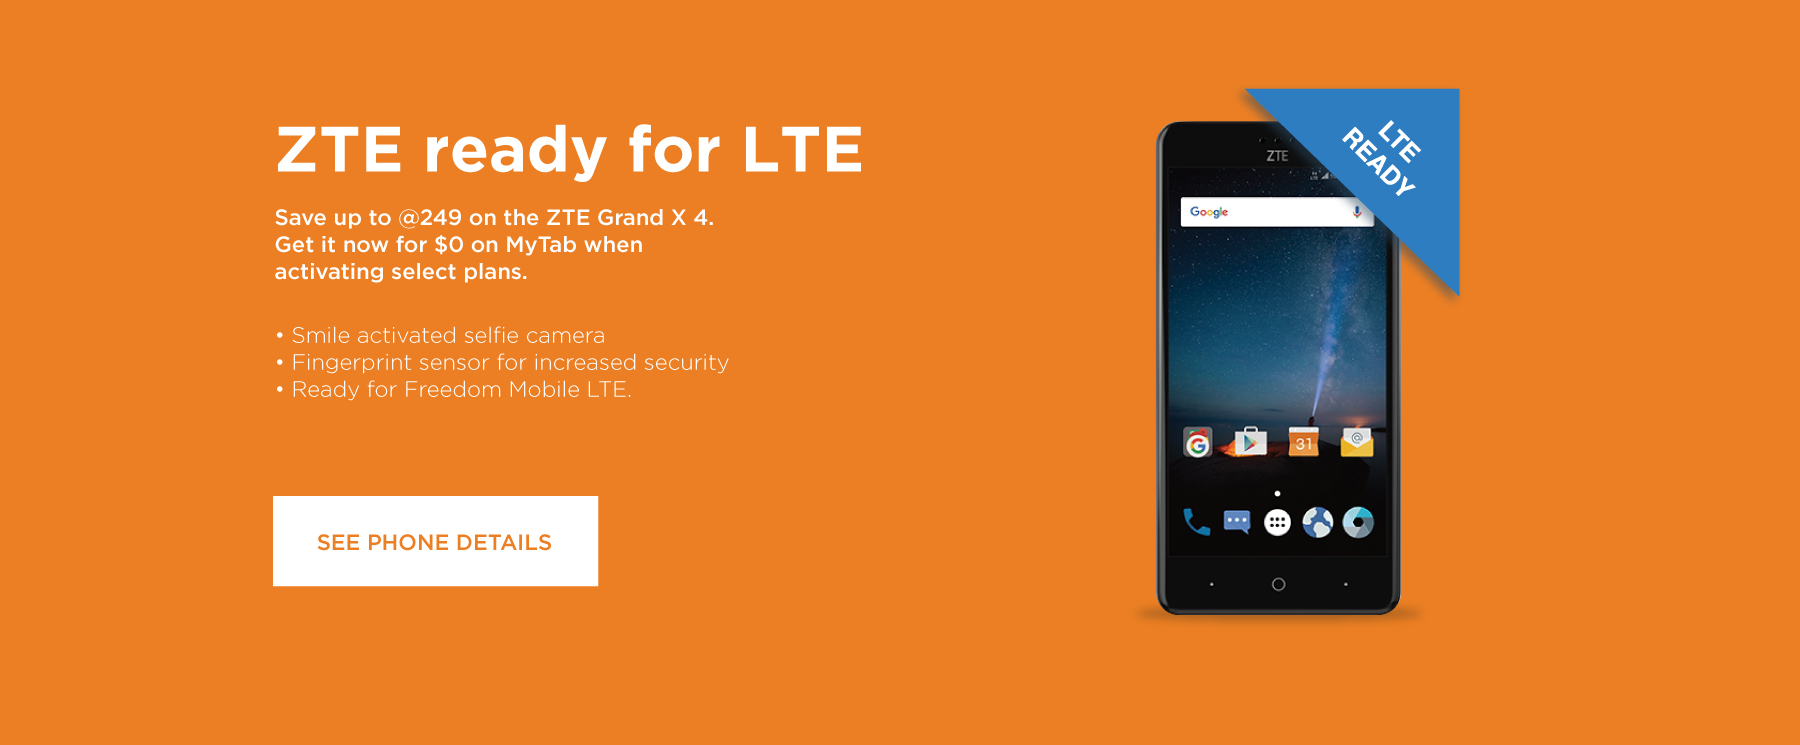 ZTE Ready for LTE